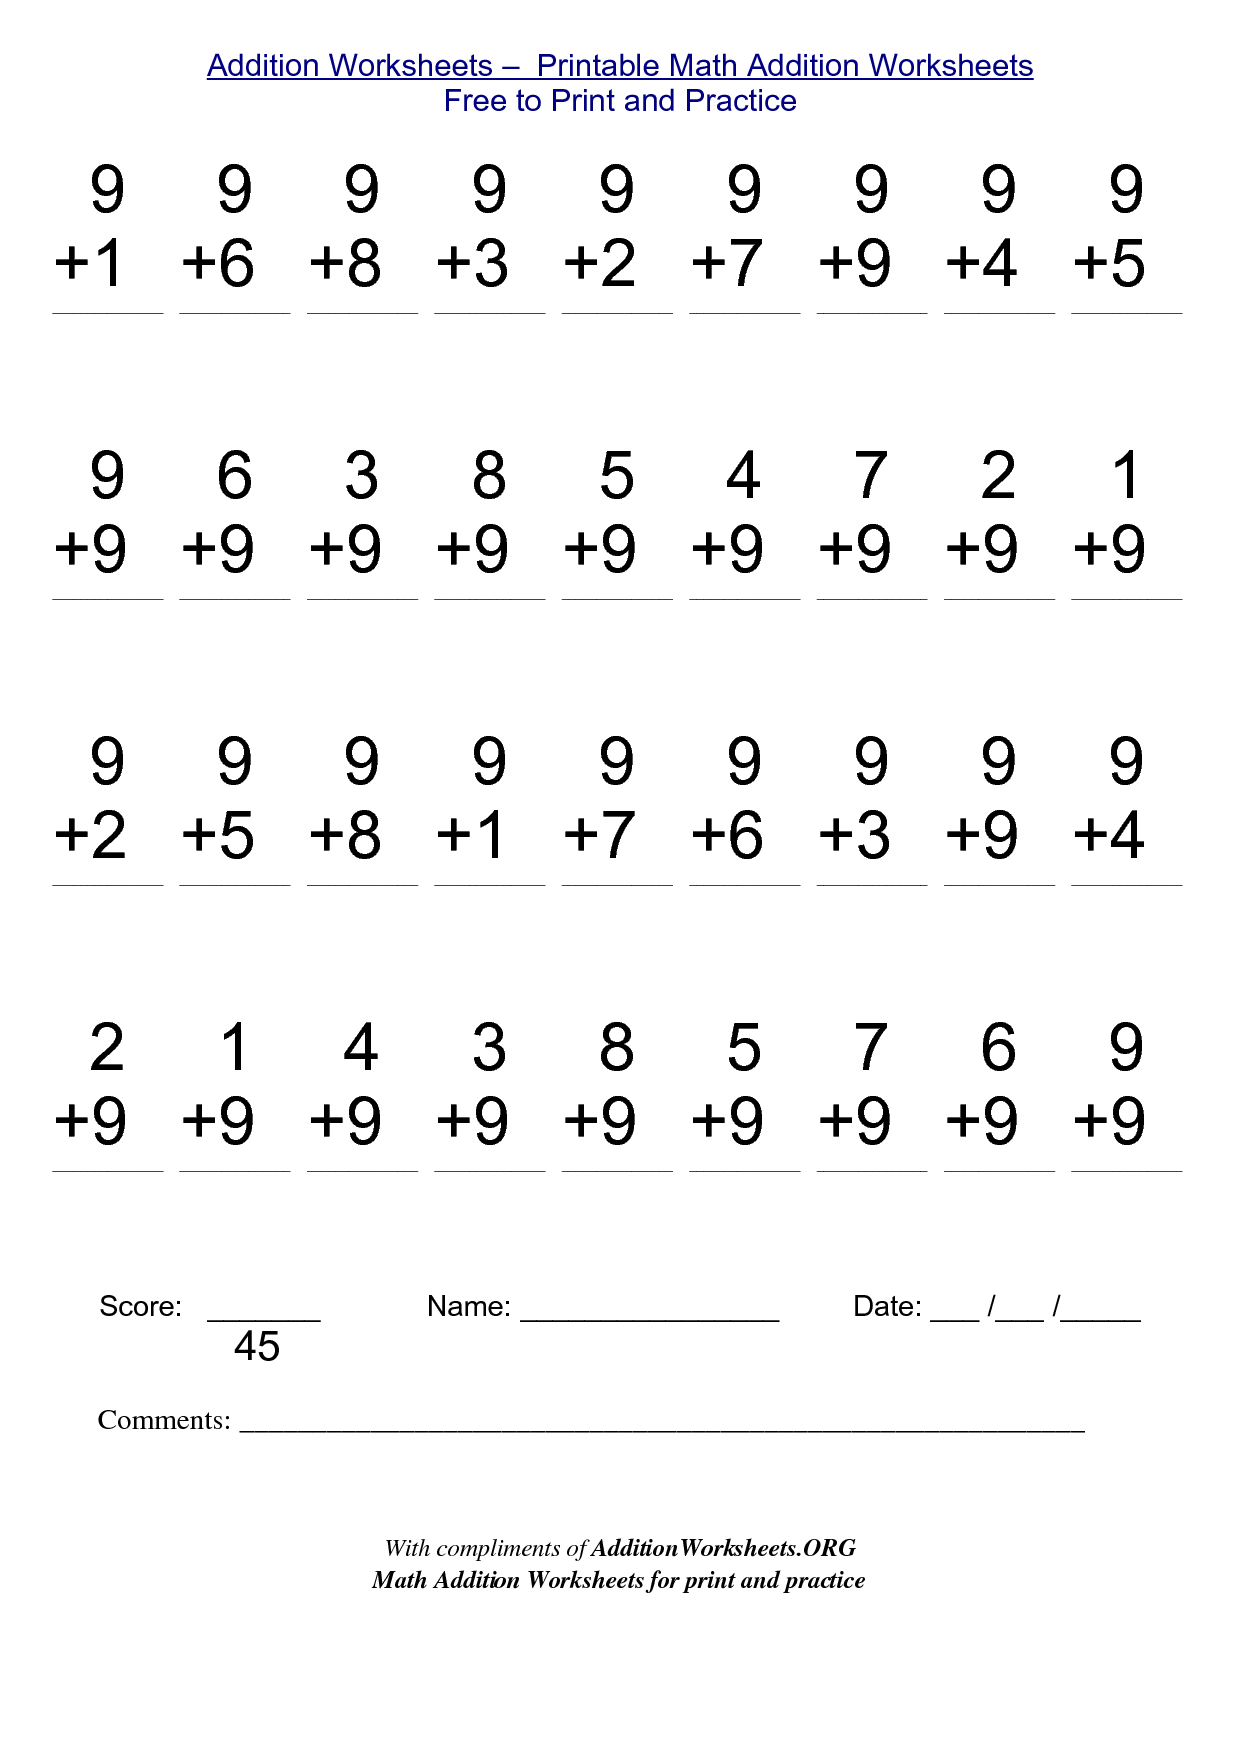 Worksheets Printable Math Worksheets 2nd Grade math worksheets for free to print alot com me pinterest addition printable print